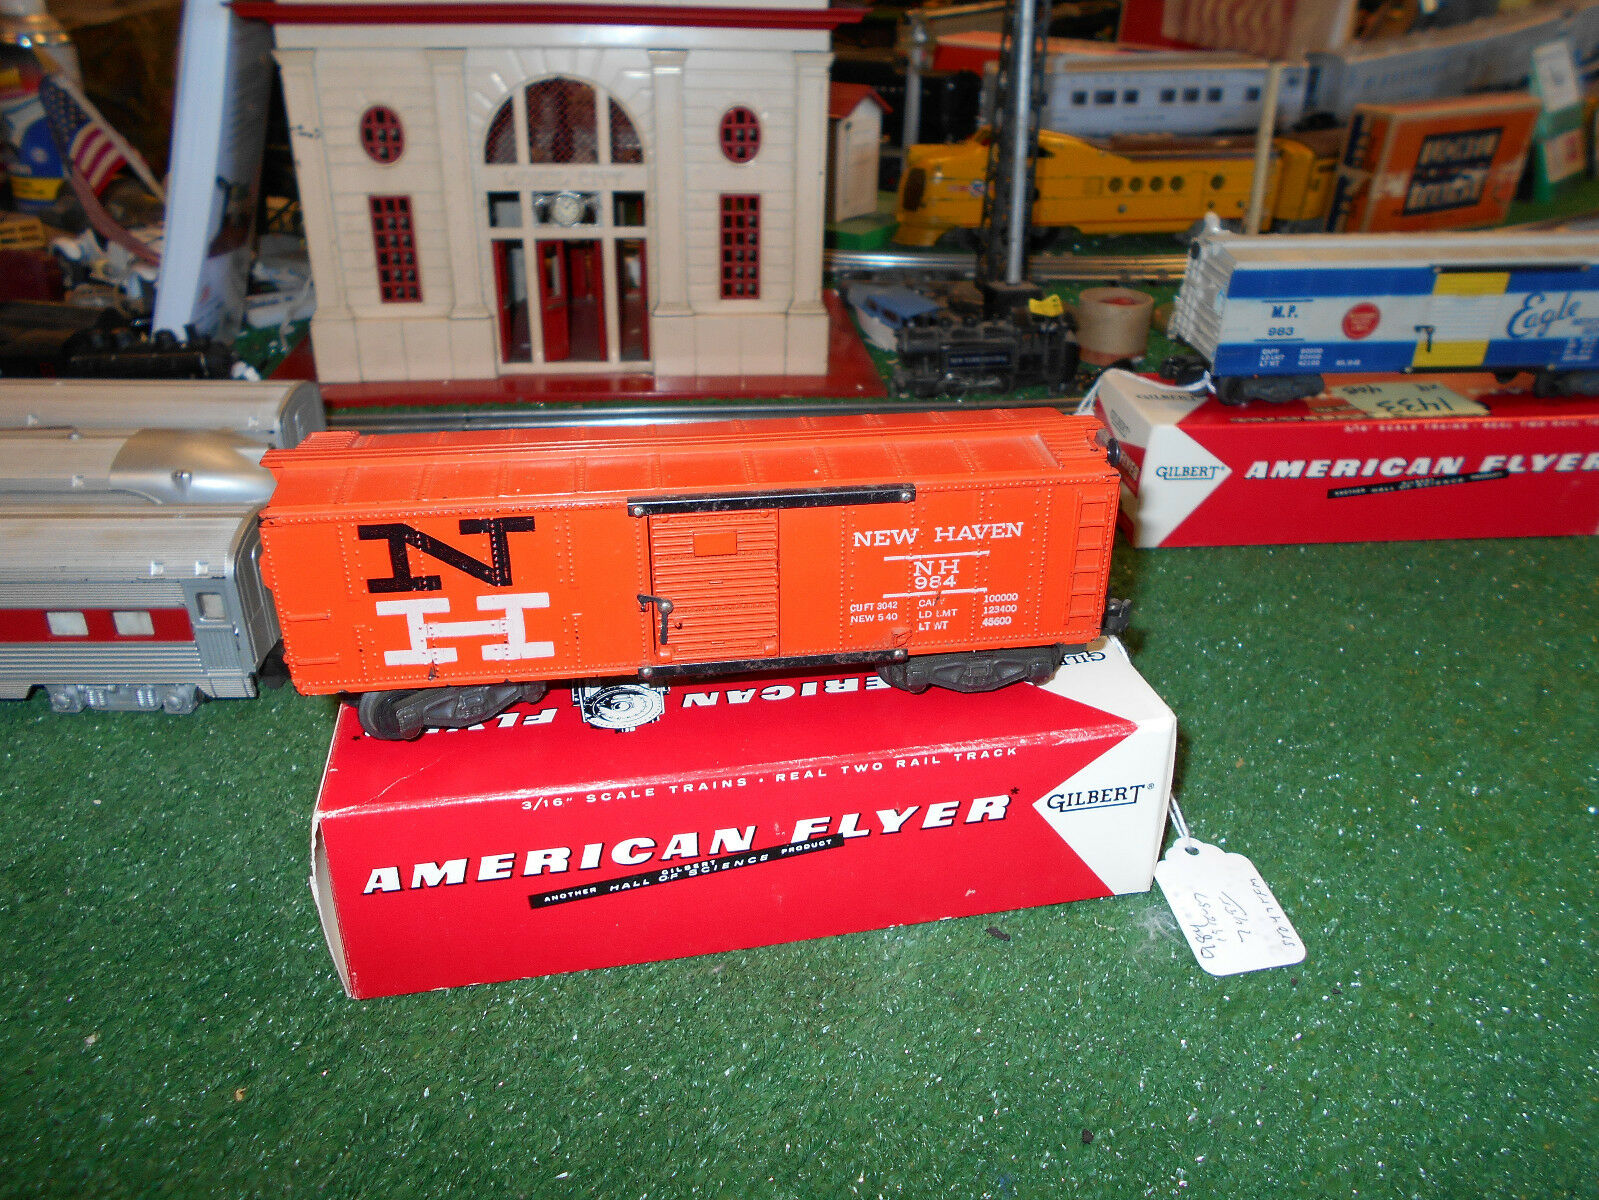 AMERICAN FLYER 984 NEW HAVEN BOX CAR ORIG EXC + COND 1956-57 GREAT GRAPHICS